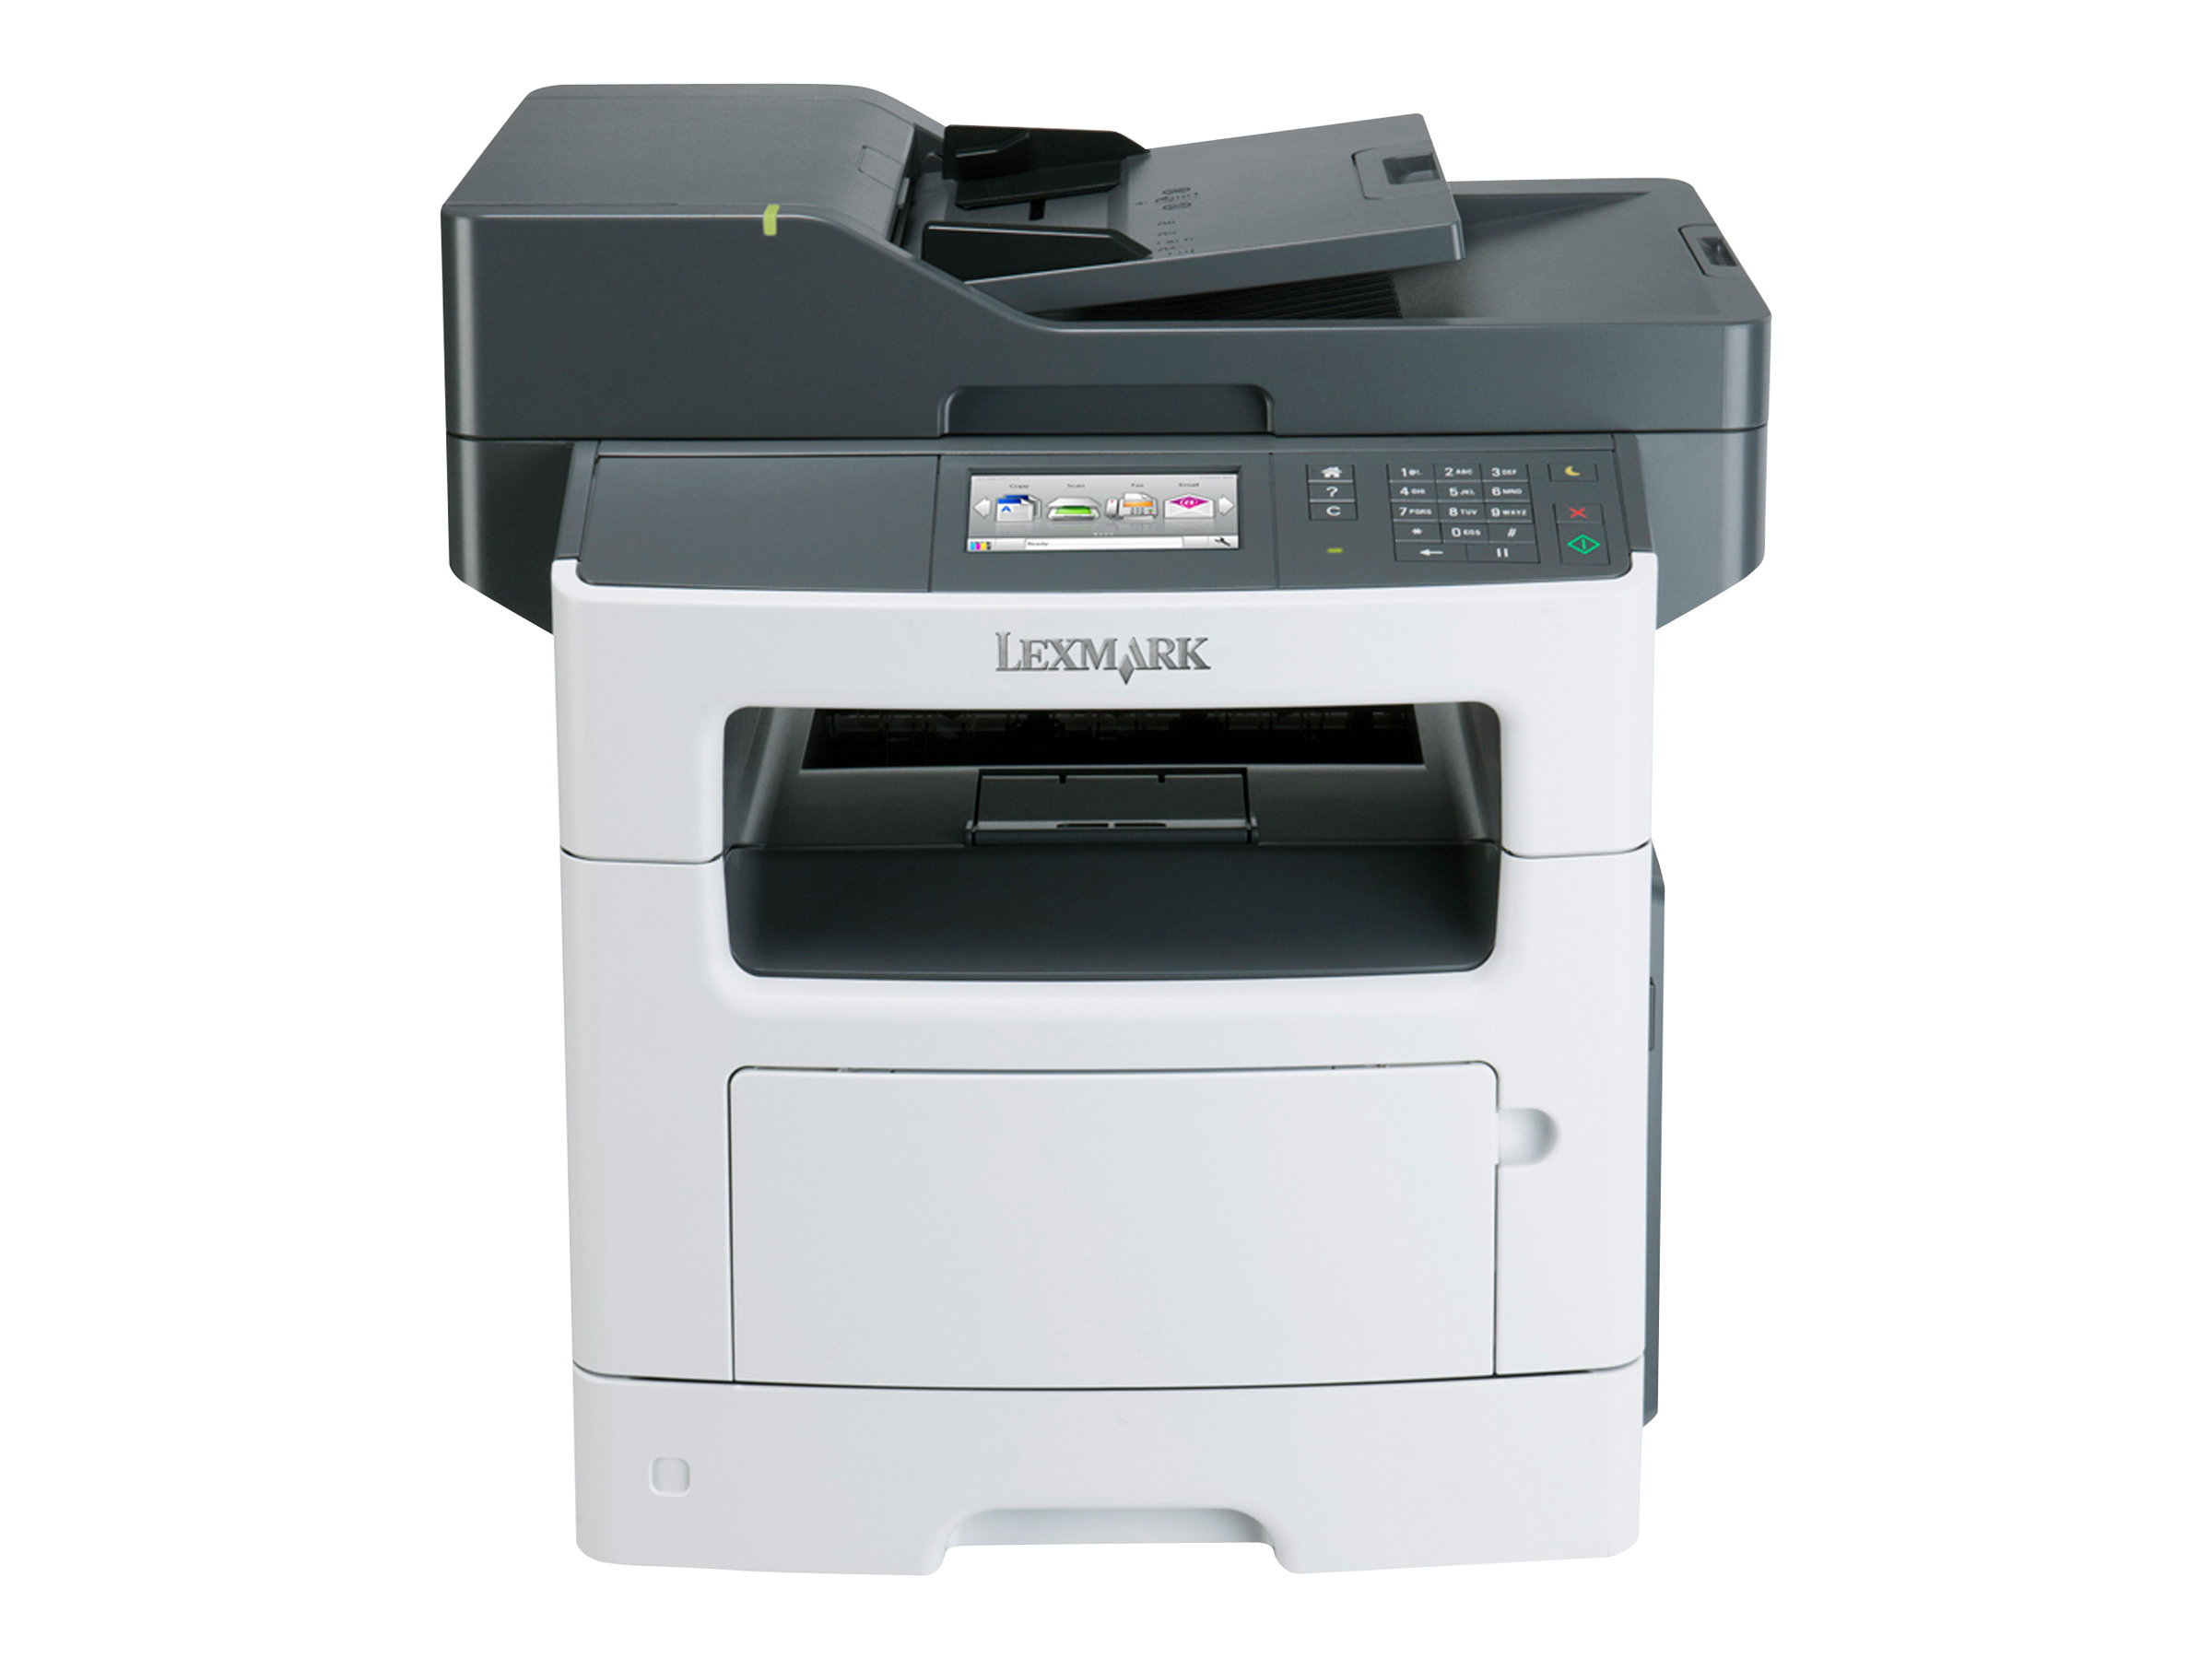 Lexmark MX511de - Multifunktionsdrucker - s/w - Laser - Legal (216 x 356 mm) (Original) - Legal (Medien)